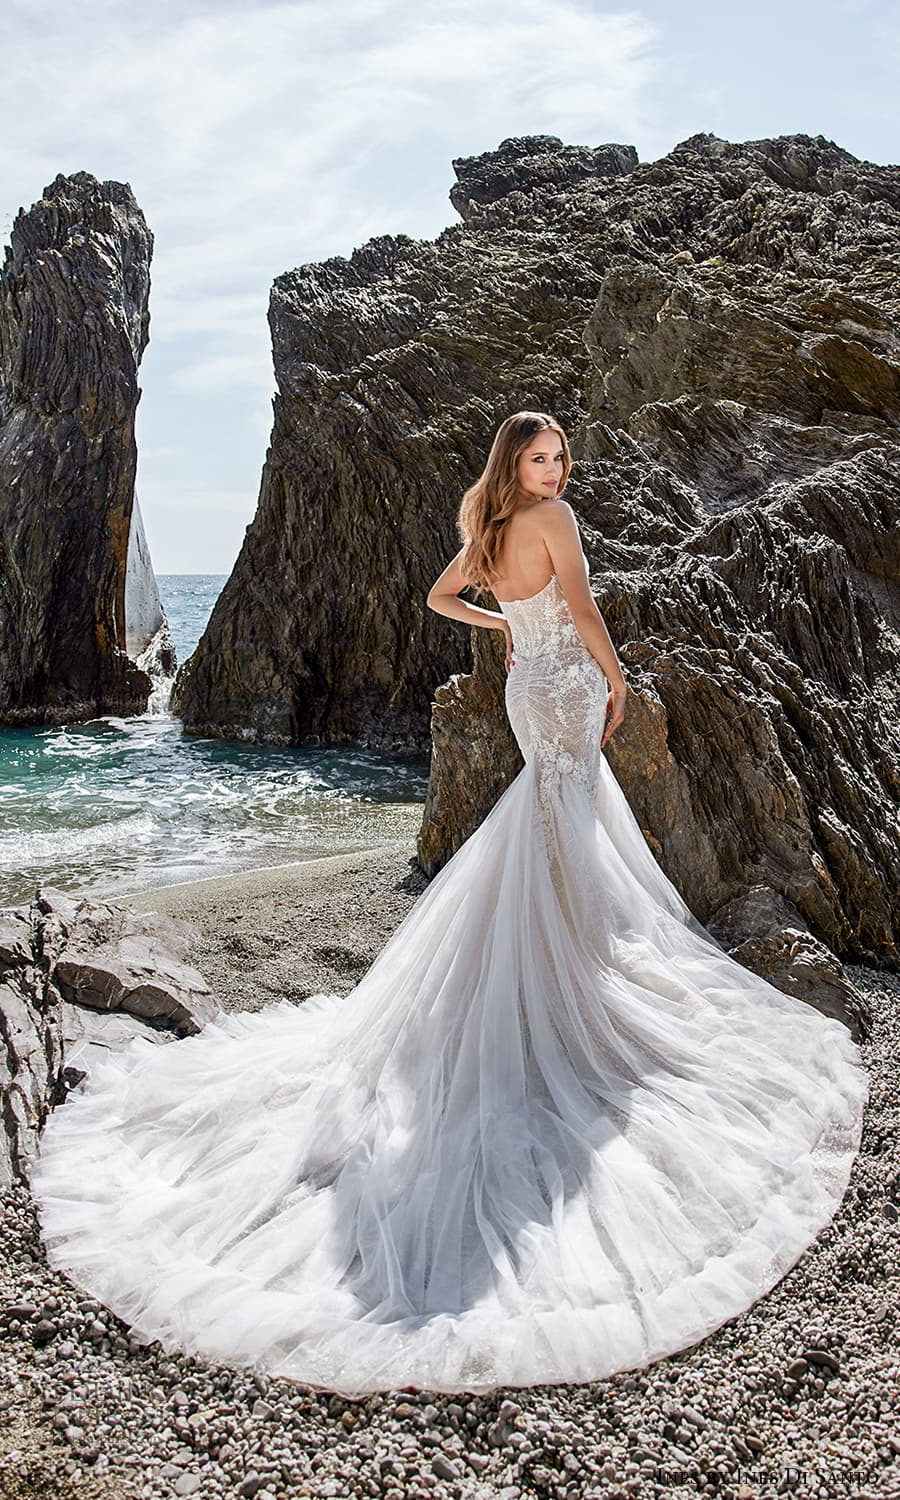 ines ines di santo spring 2022 bridal strapless sweetheart neckline embellished bodice fit flare mermaid wedding drss chapel train (6) bv